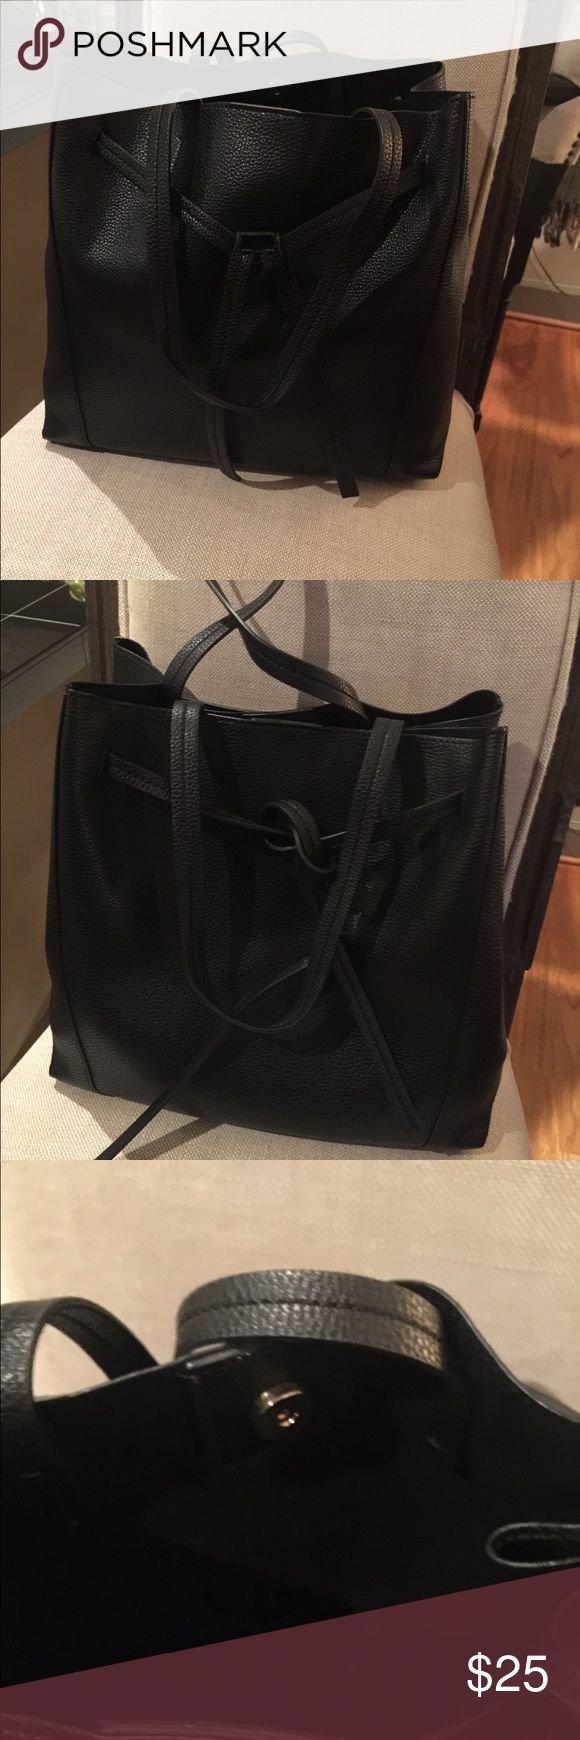 """Banana Republic black tote Banana Tepublic black tote.  Stop can tie close slightly to create another look.  No pockets inside. Fairly simple and classy tote.  12"""" wide x  7"""" x 12"""" deep.  Also has outside cellphone pocket on back of purse.  This is faux leather. Banana Republic Bags Totes"""